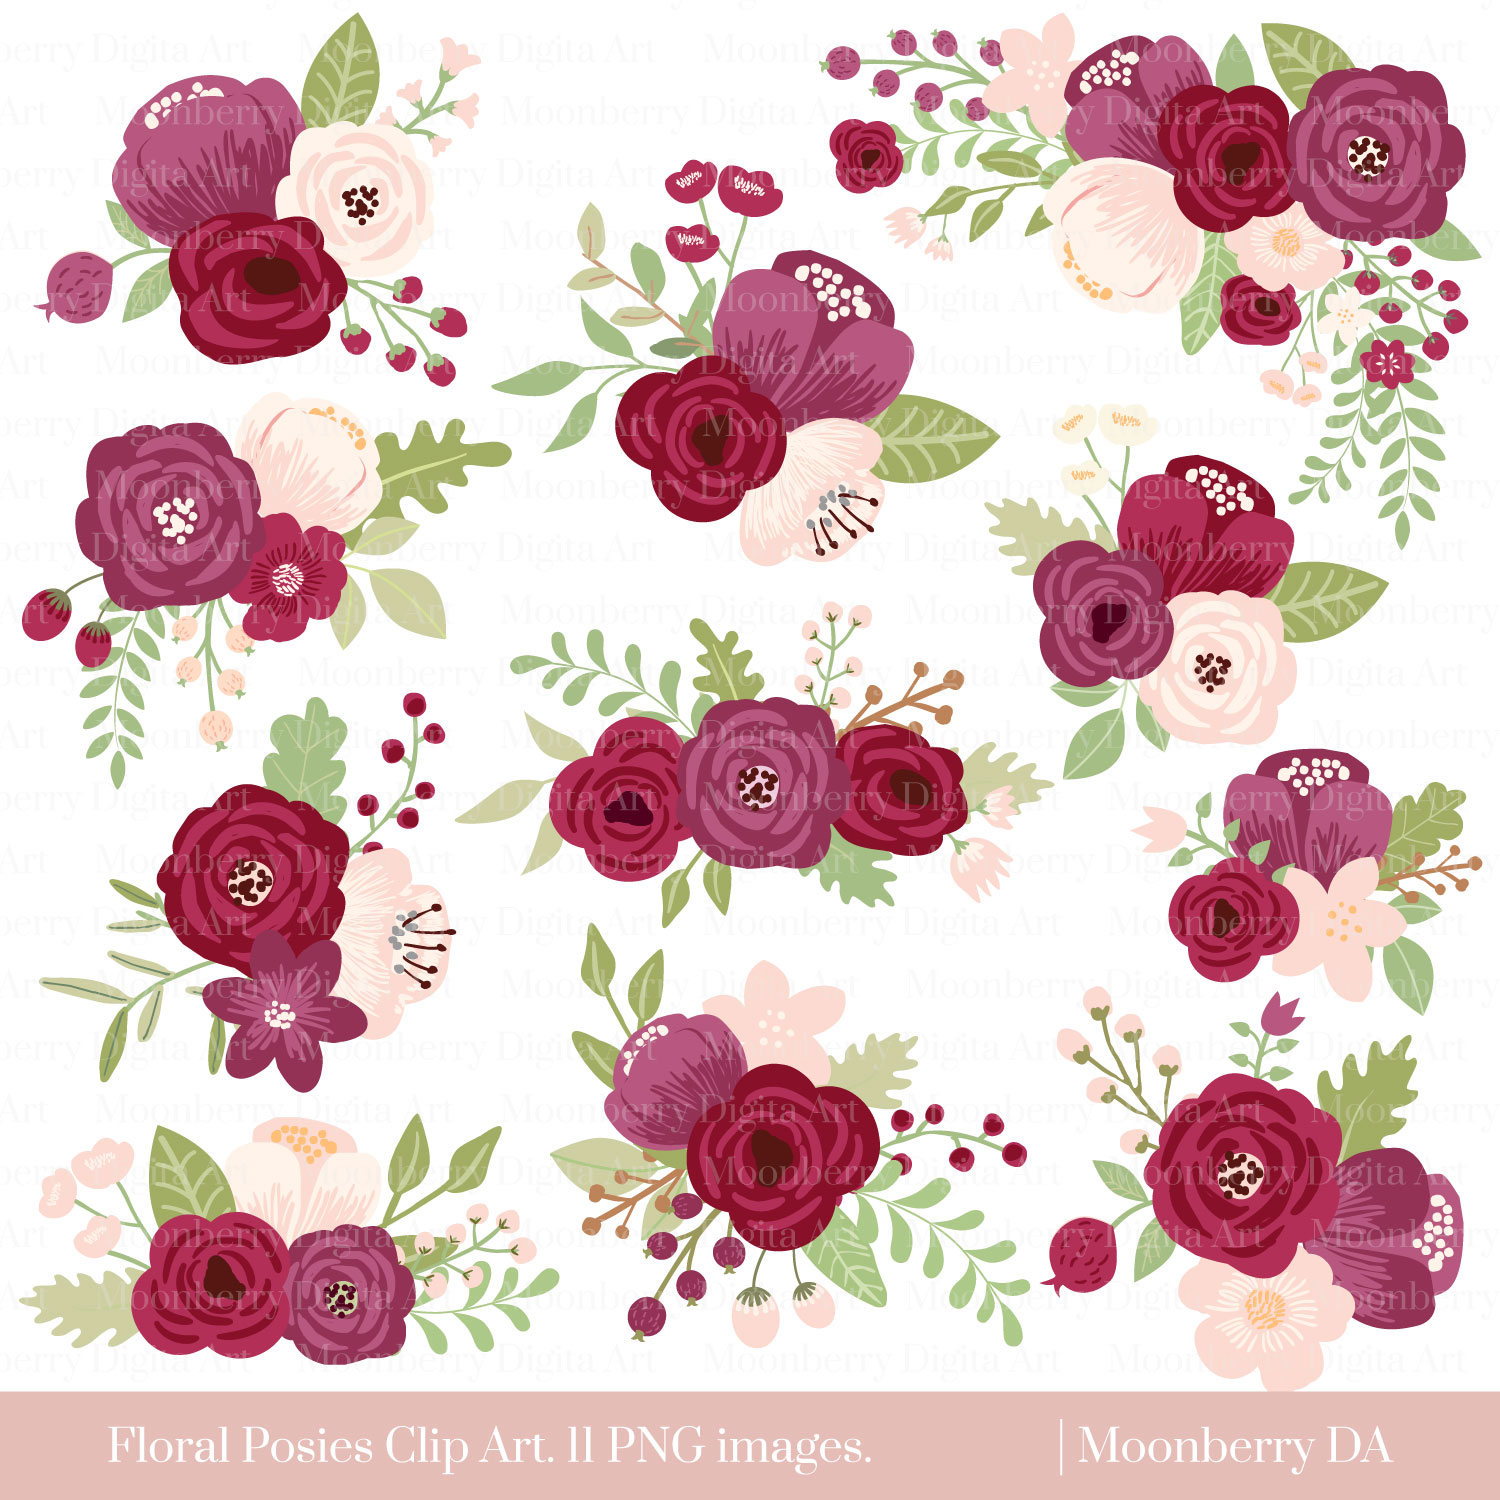 Clipart Flowers Wedding Invitation Clipart Flowers: Marsala Flower Clipart FLORAL POSIES CLIPART